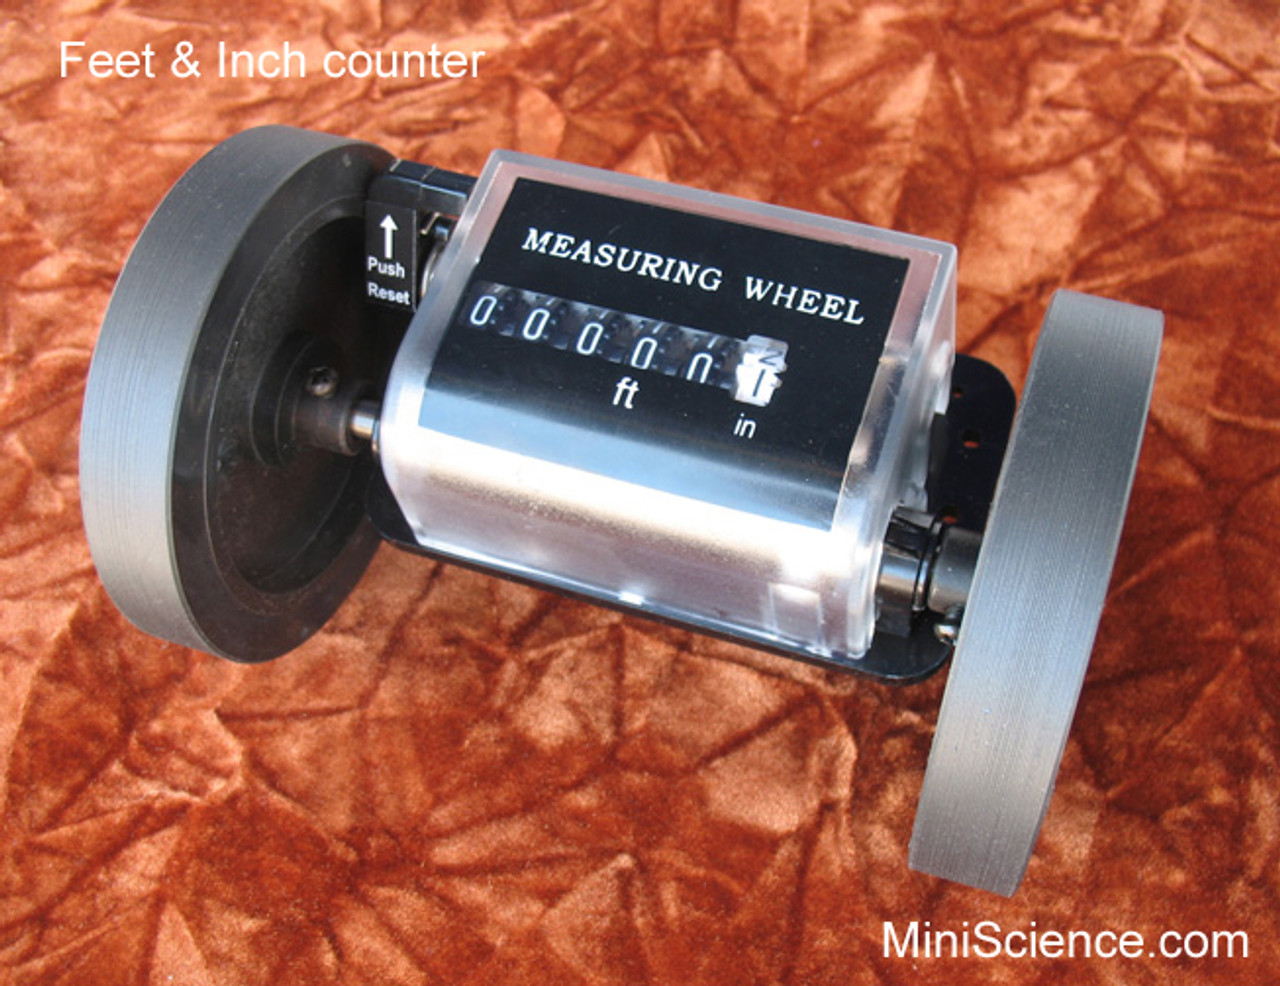 Feet measuring counter with two wheels